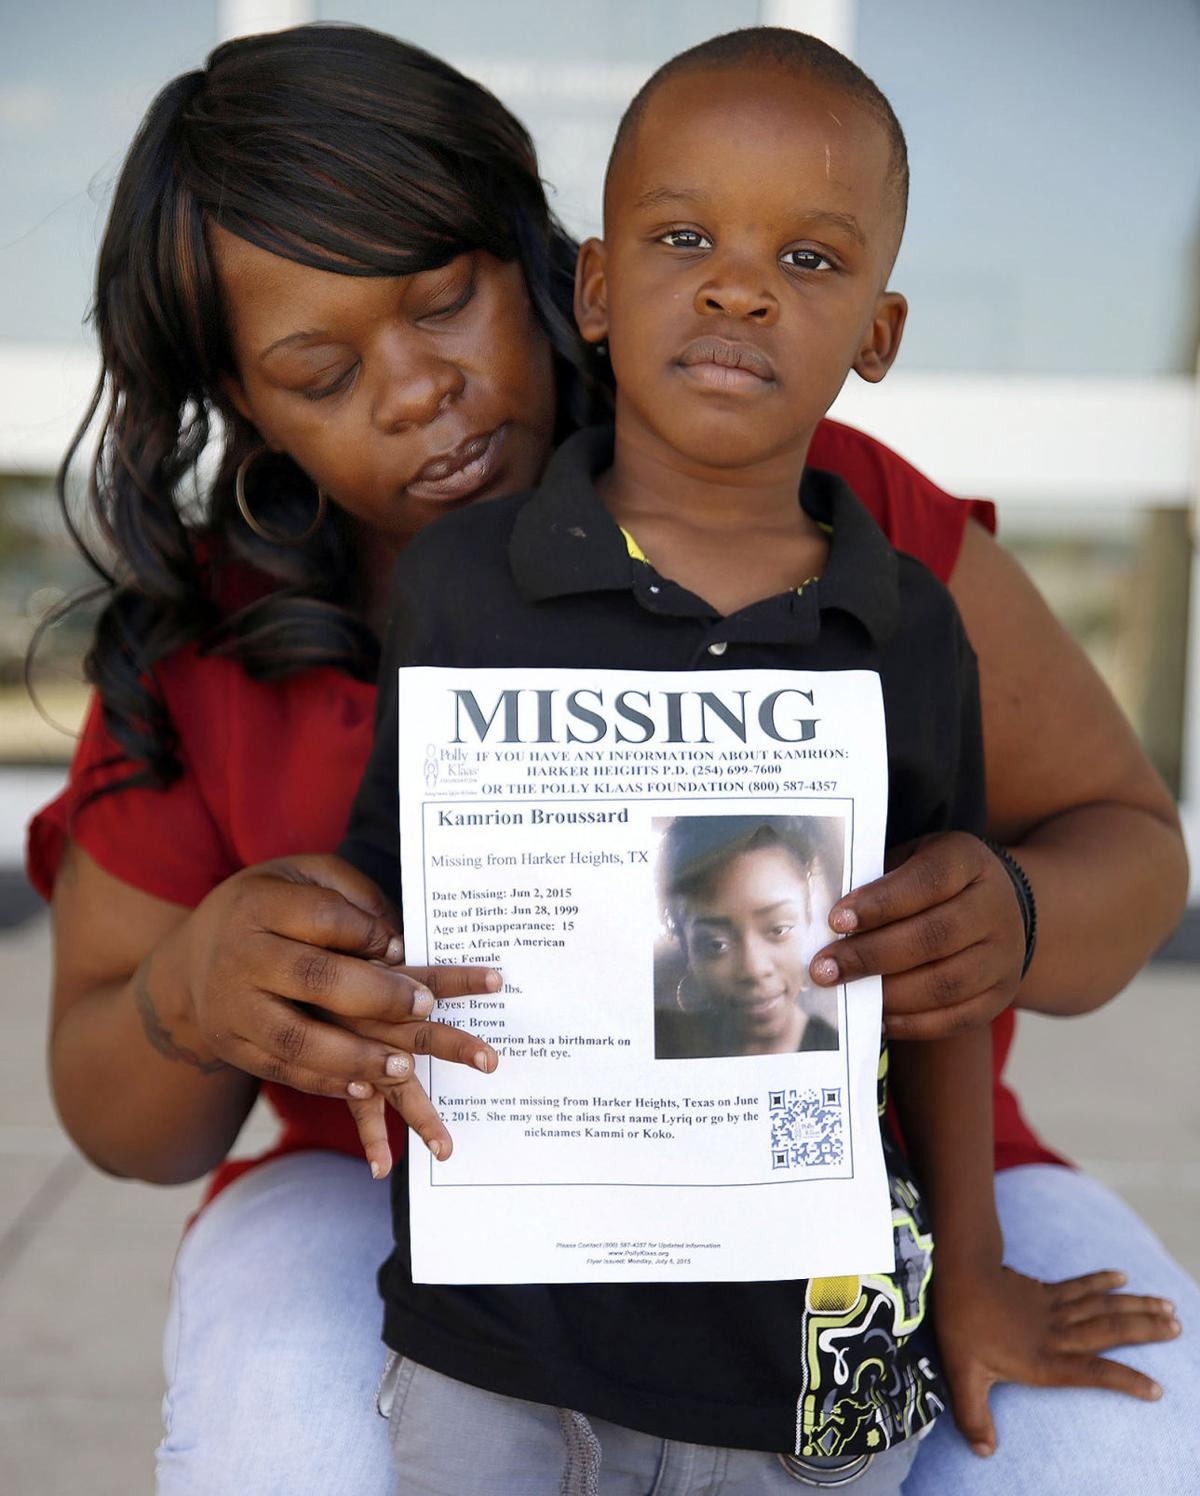 Lakeesha Edwards, mother of Kamrion Broussard, girl missing in Houston 2015